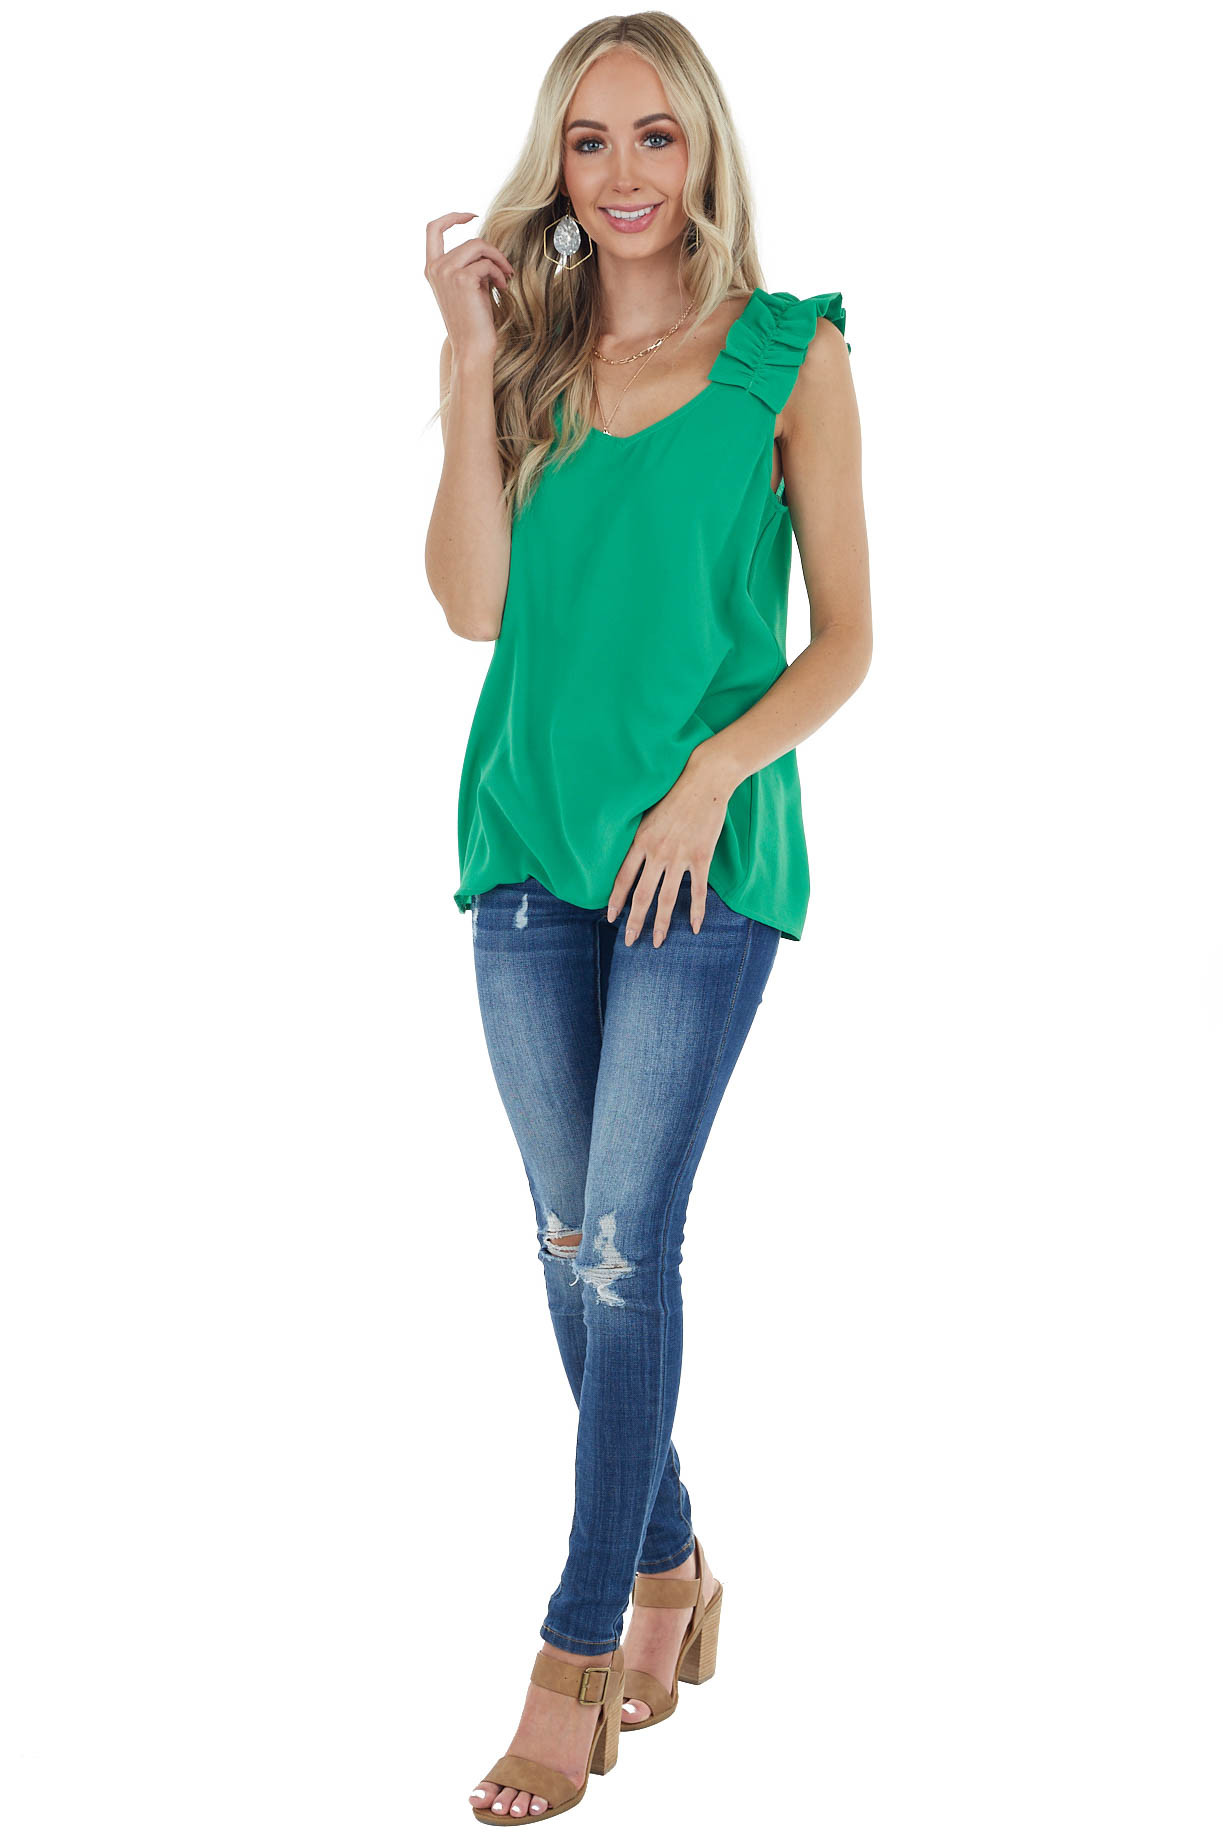 Kelly Green Textured Sleeveless Blouse with Ruffle Straps